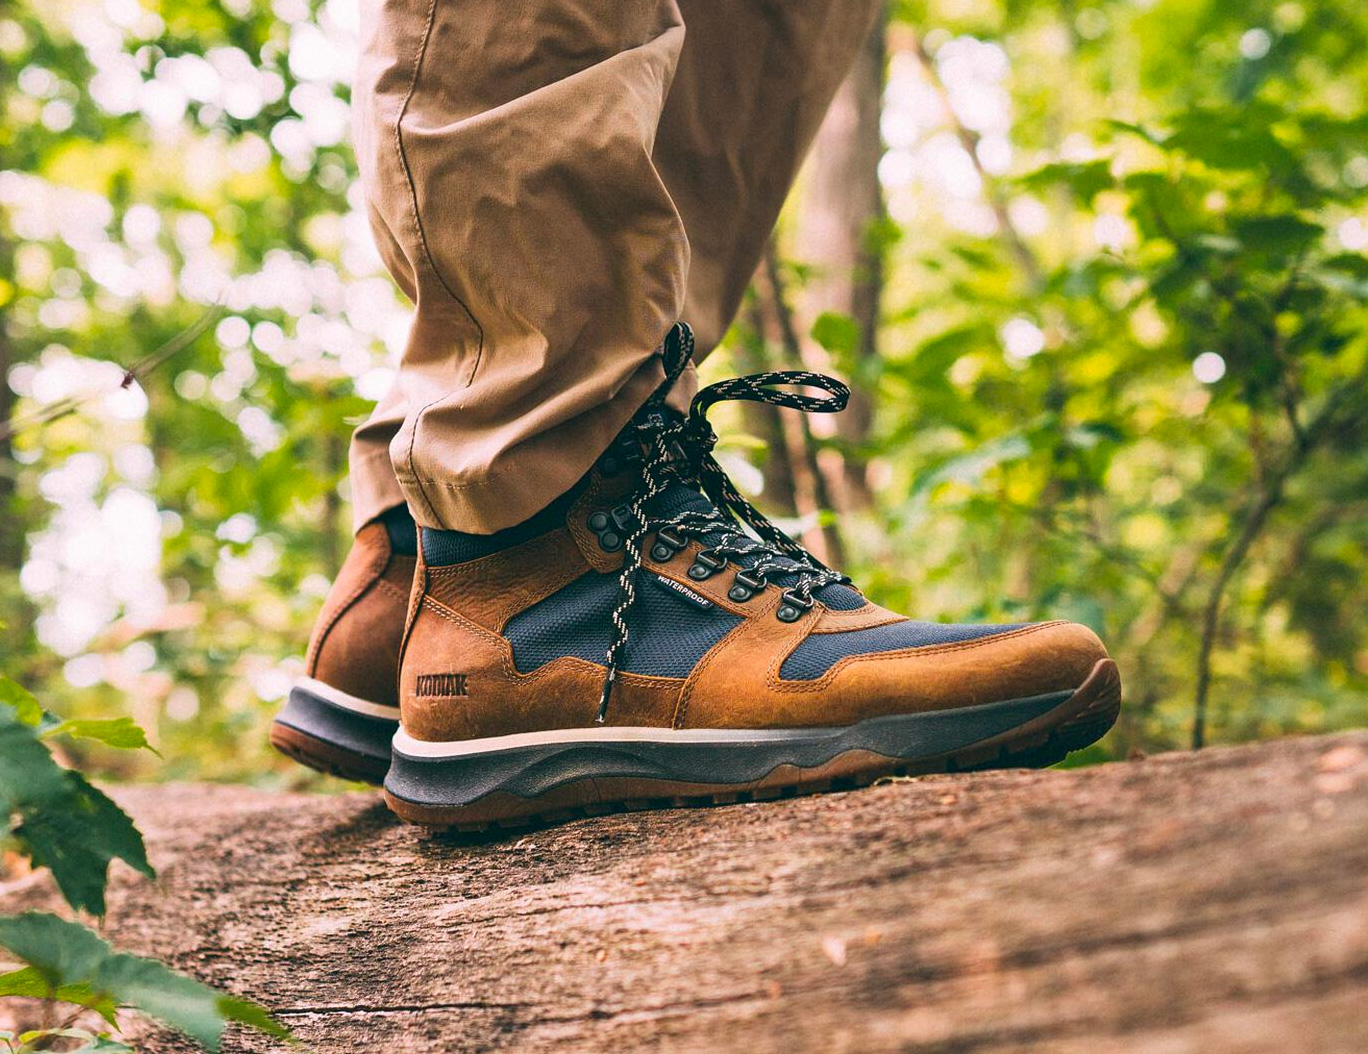 Kodiak Keeps You On the Path with a Waterproof Summer Hiker at werd.com